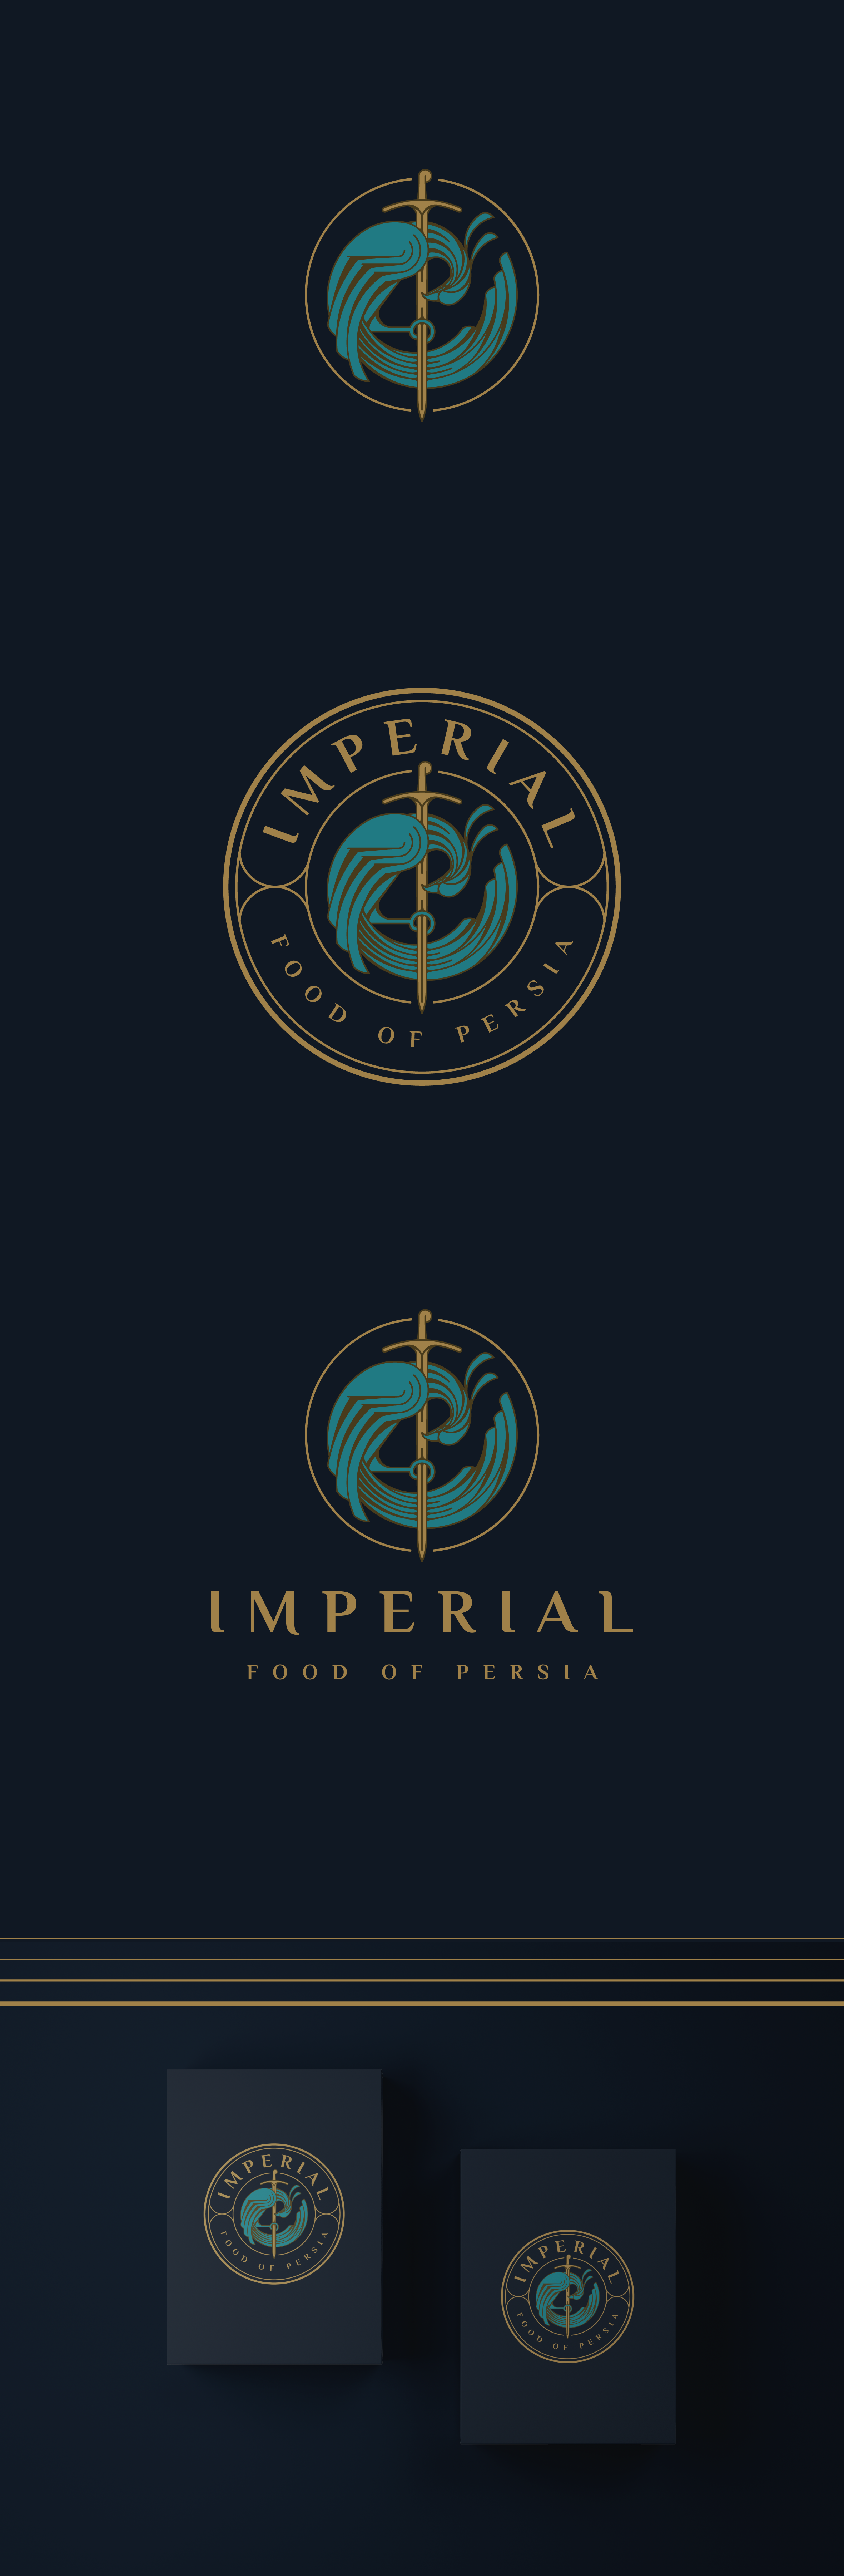 Logo design for a food compony or revision of a logo.